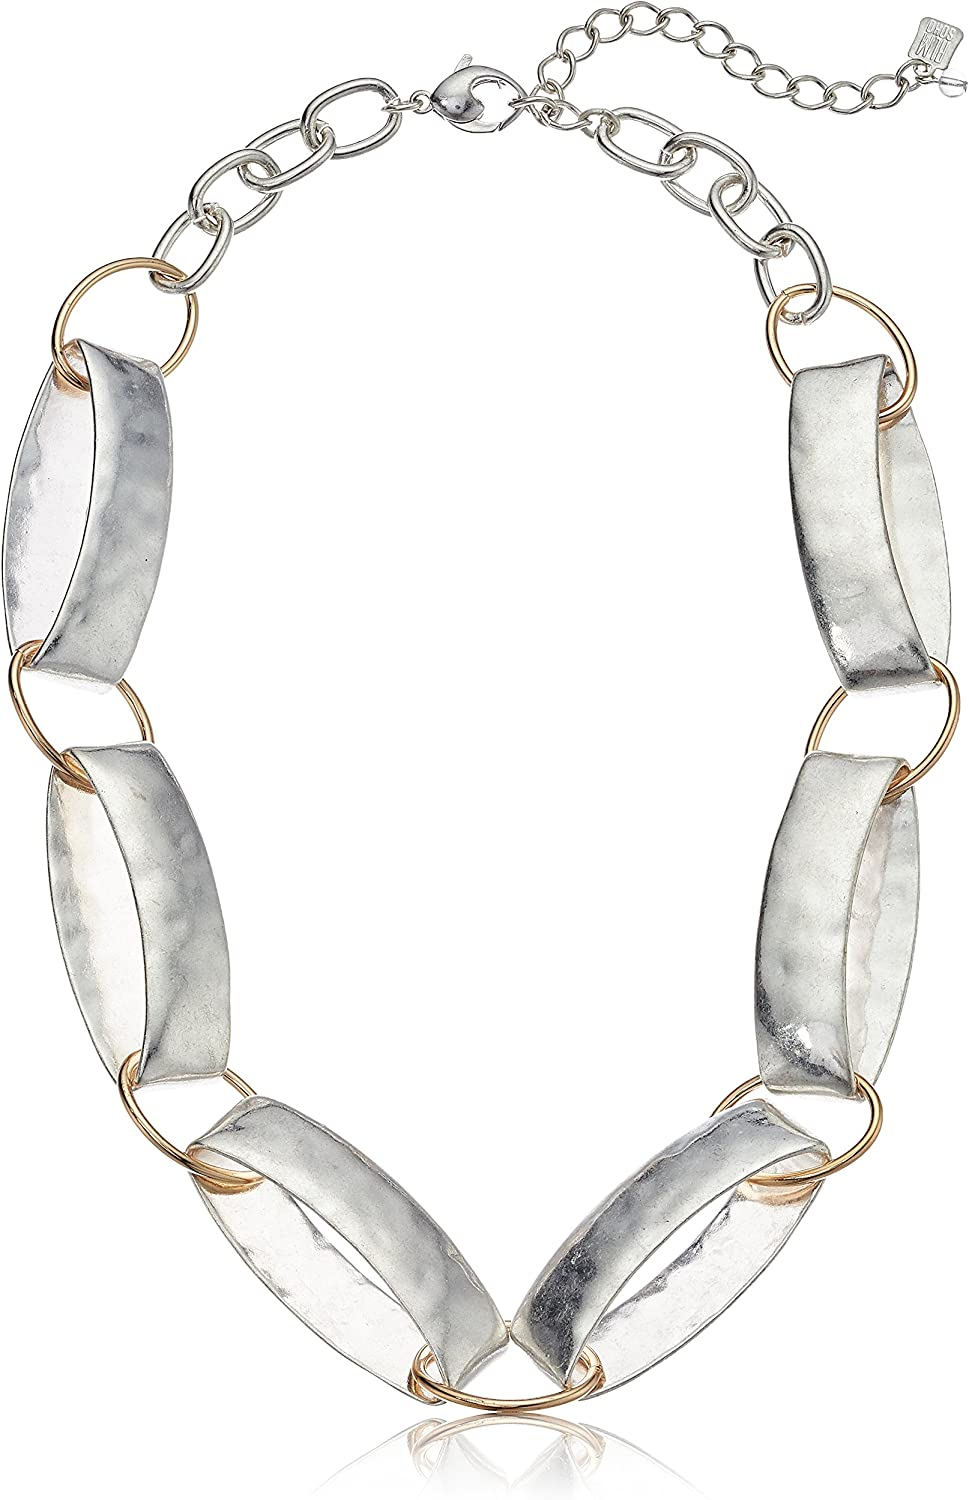 Robert Lee Cheap mail order sales Morris Memphis Mall Women's Silver Strand Link Necklace Collar On